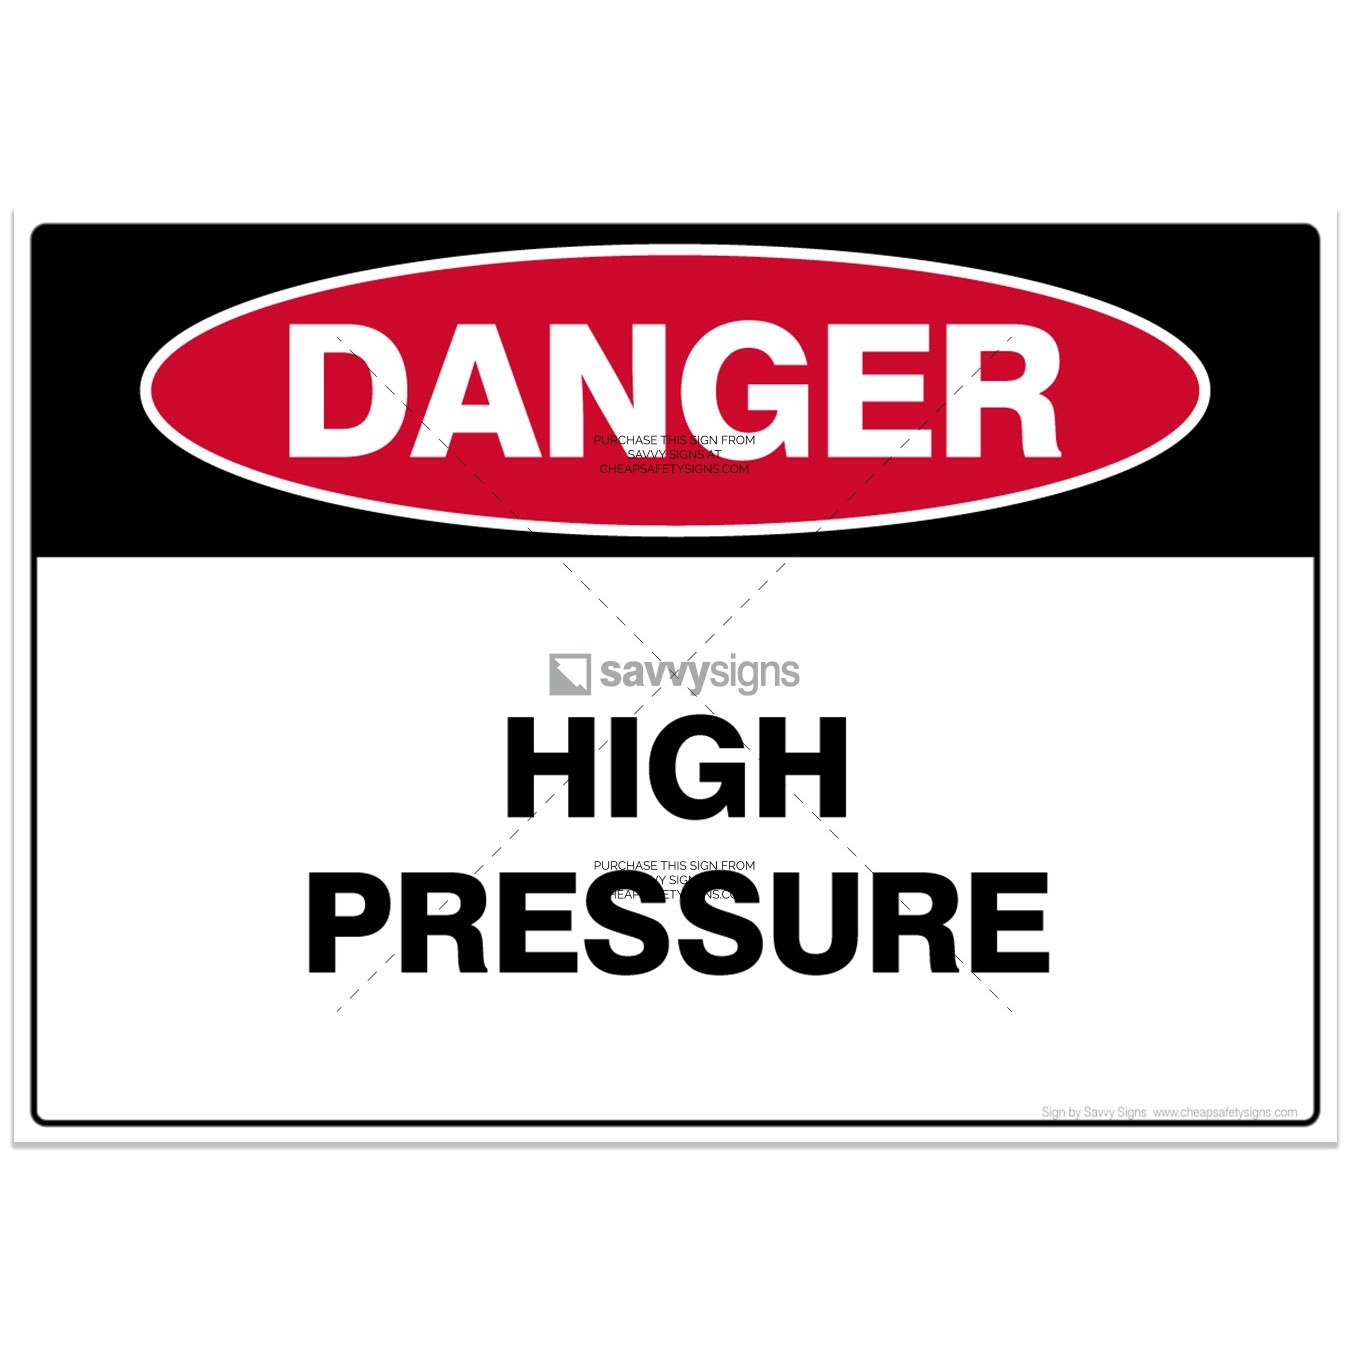 SSDAN3049-DANGER-Workplace-Safety-Signs_Savvy-Signs_v4.1